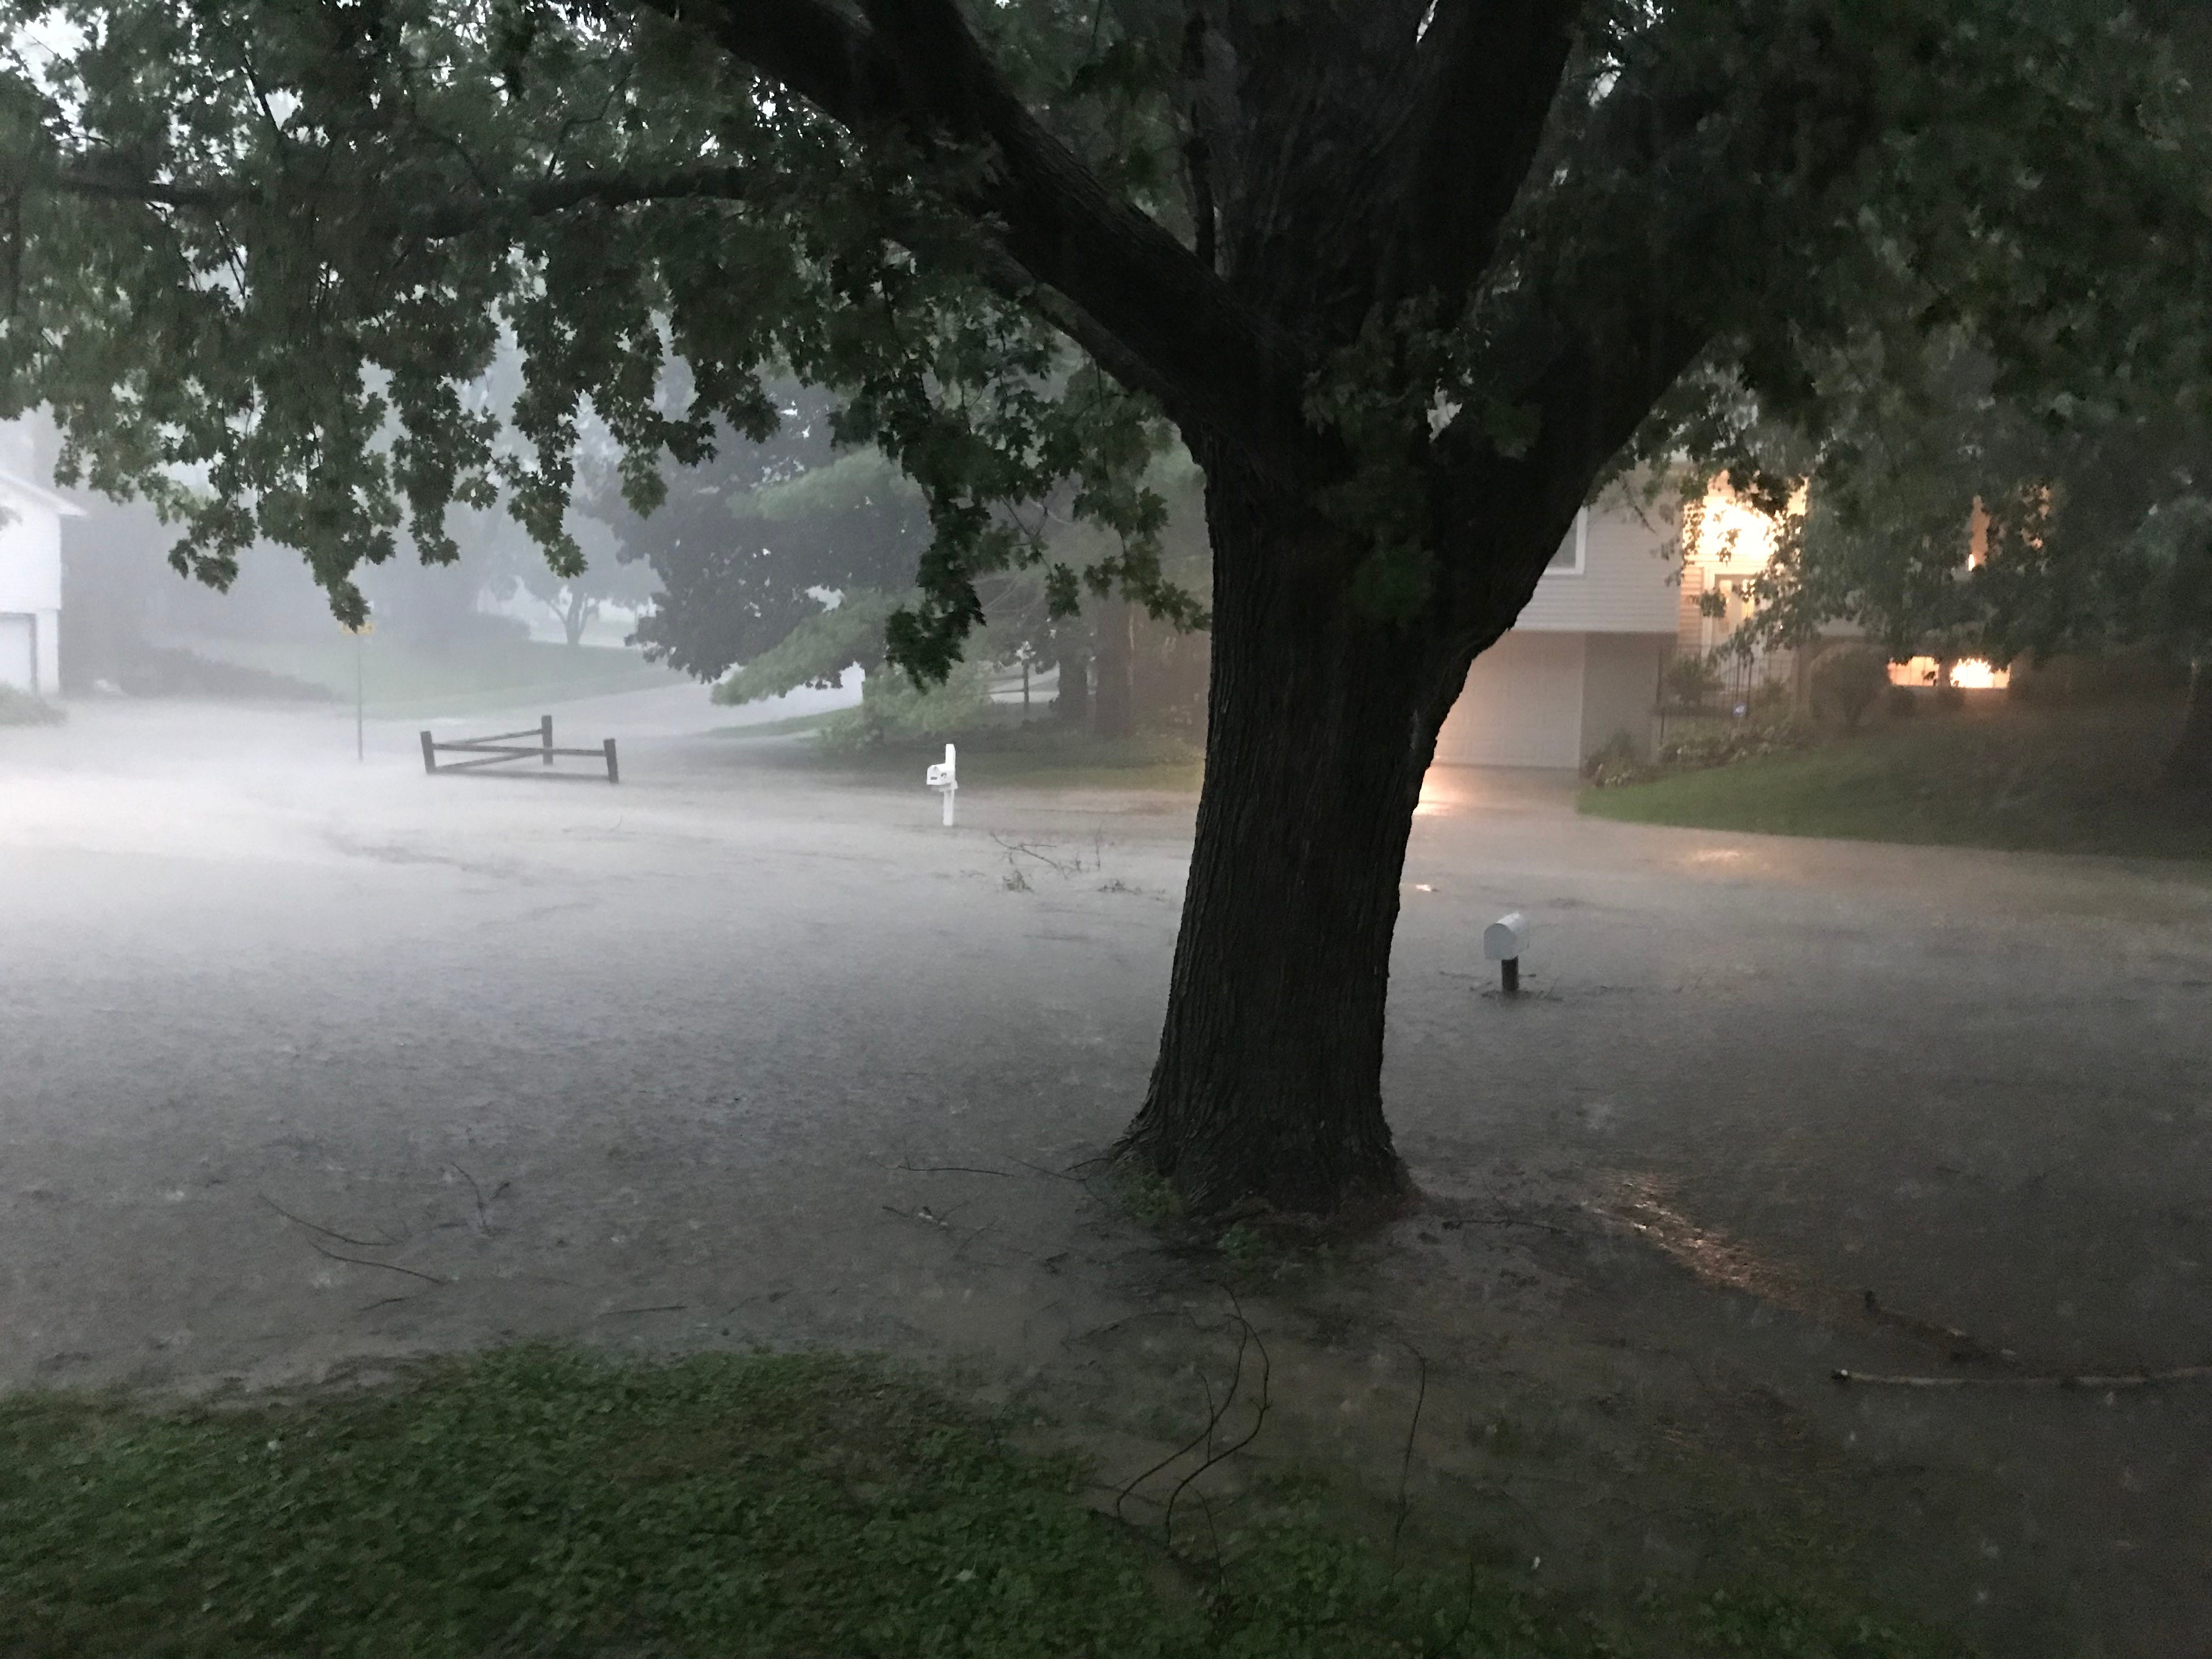 Spot flash flooding is shown near the intersection of Weeber Street and Weeber Circle in Iowa City on Tuesday night.